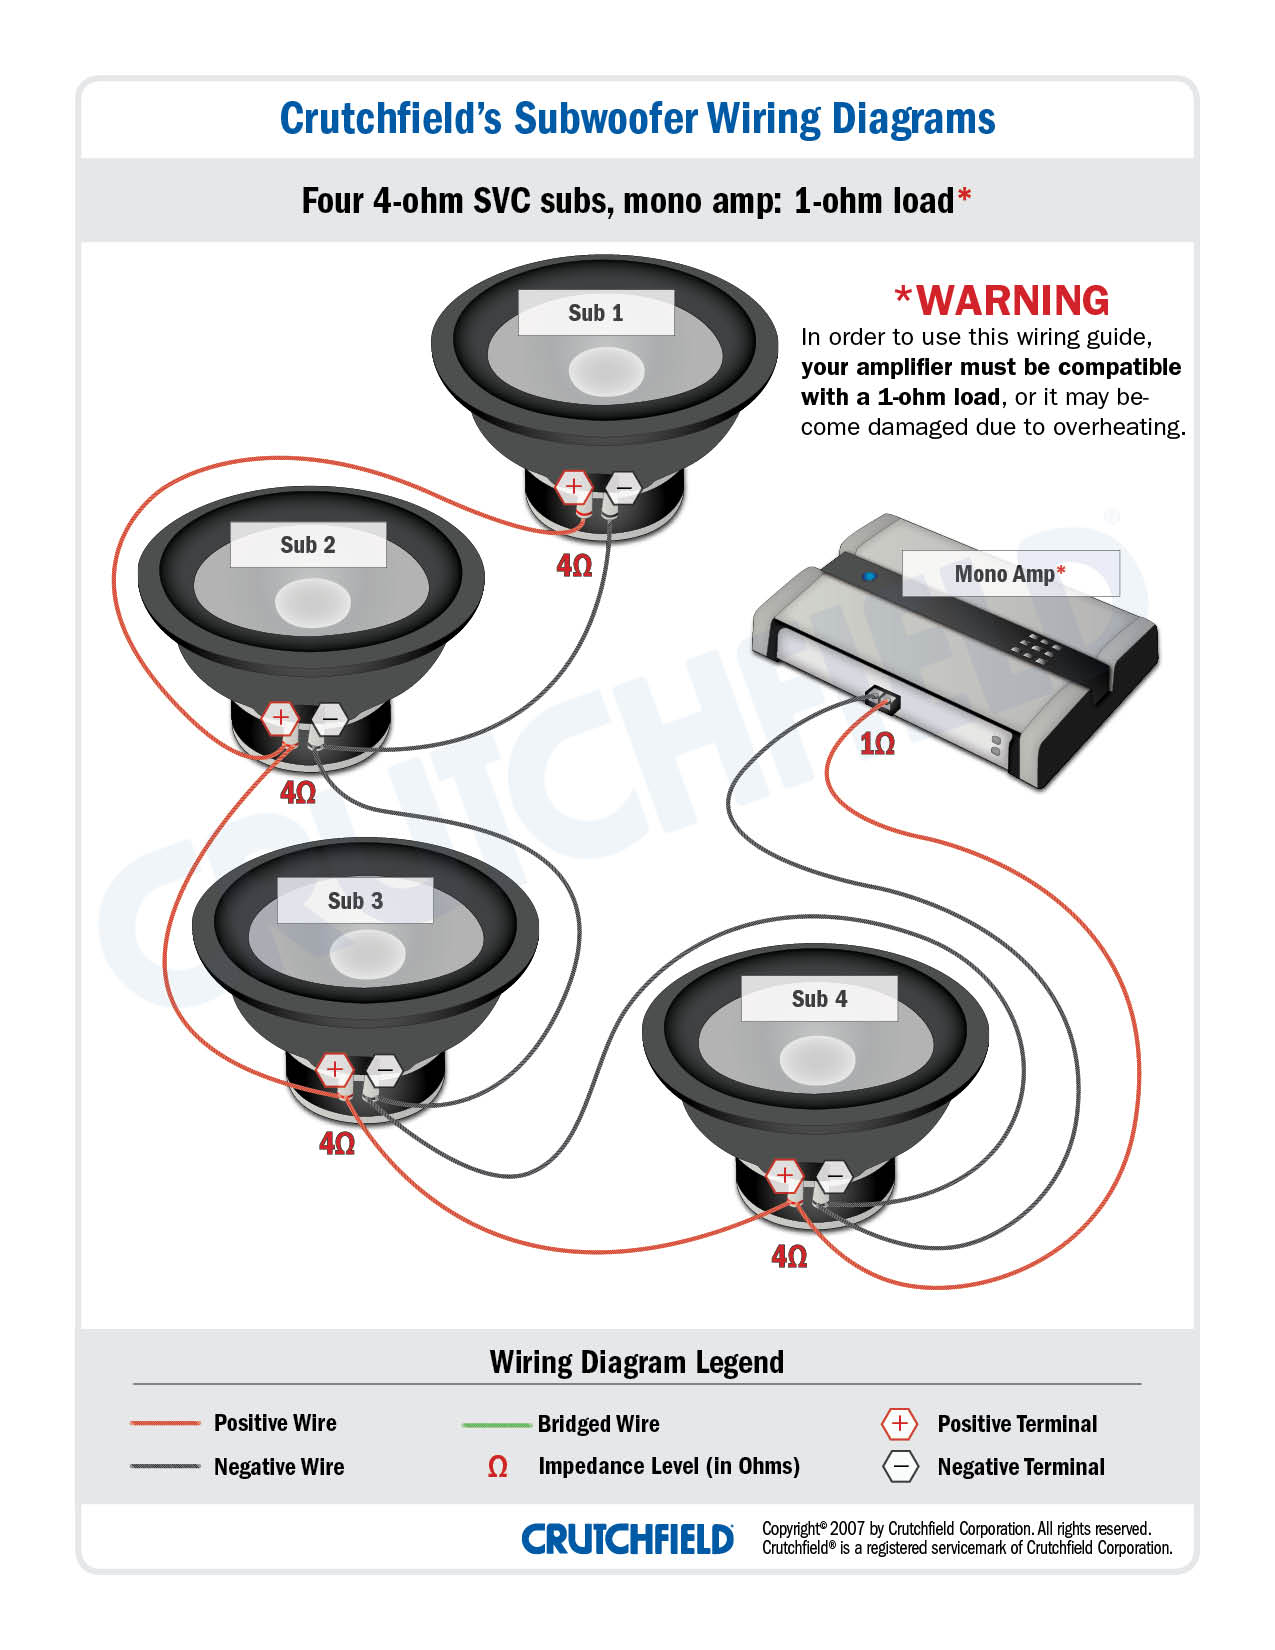 4 SVC 4 ohm mono low imp wiring subwoofers what's all this about ohms? dual 2 ohm wiring diagram at n-0.co